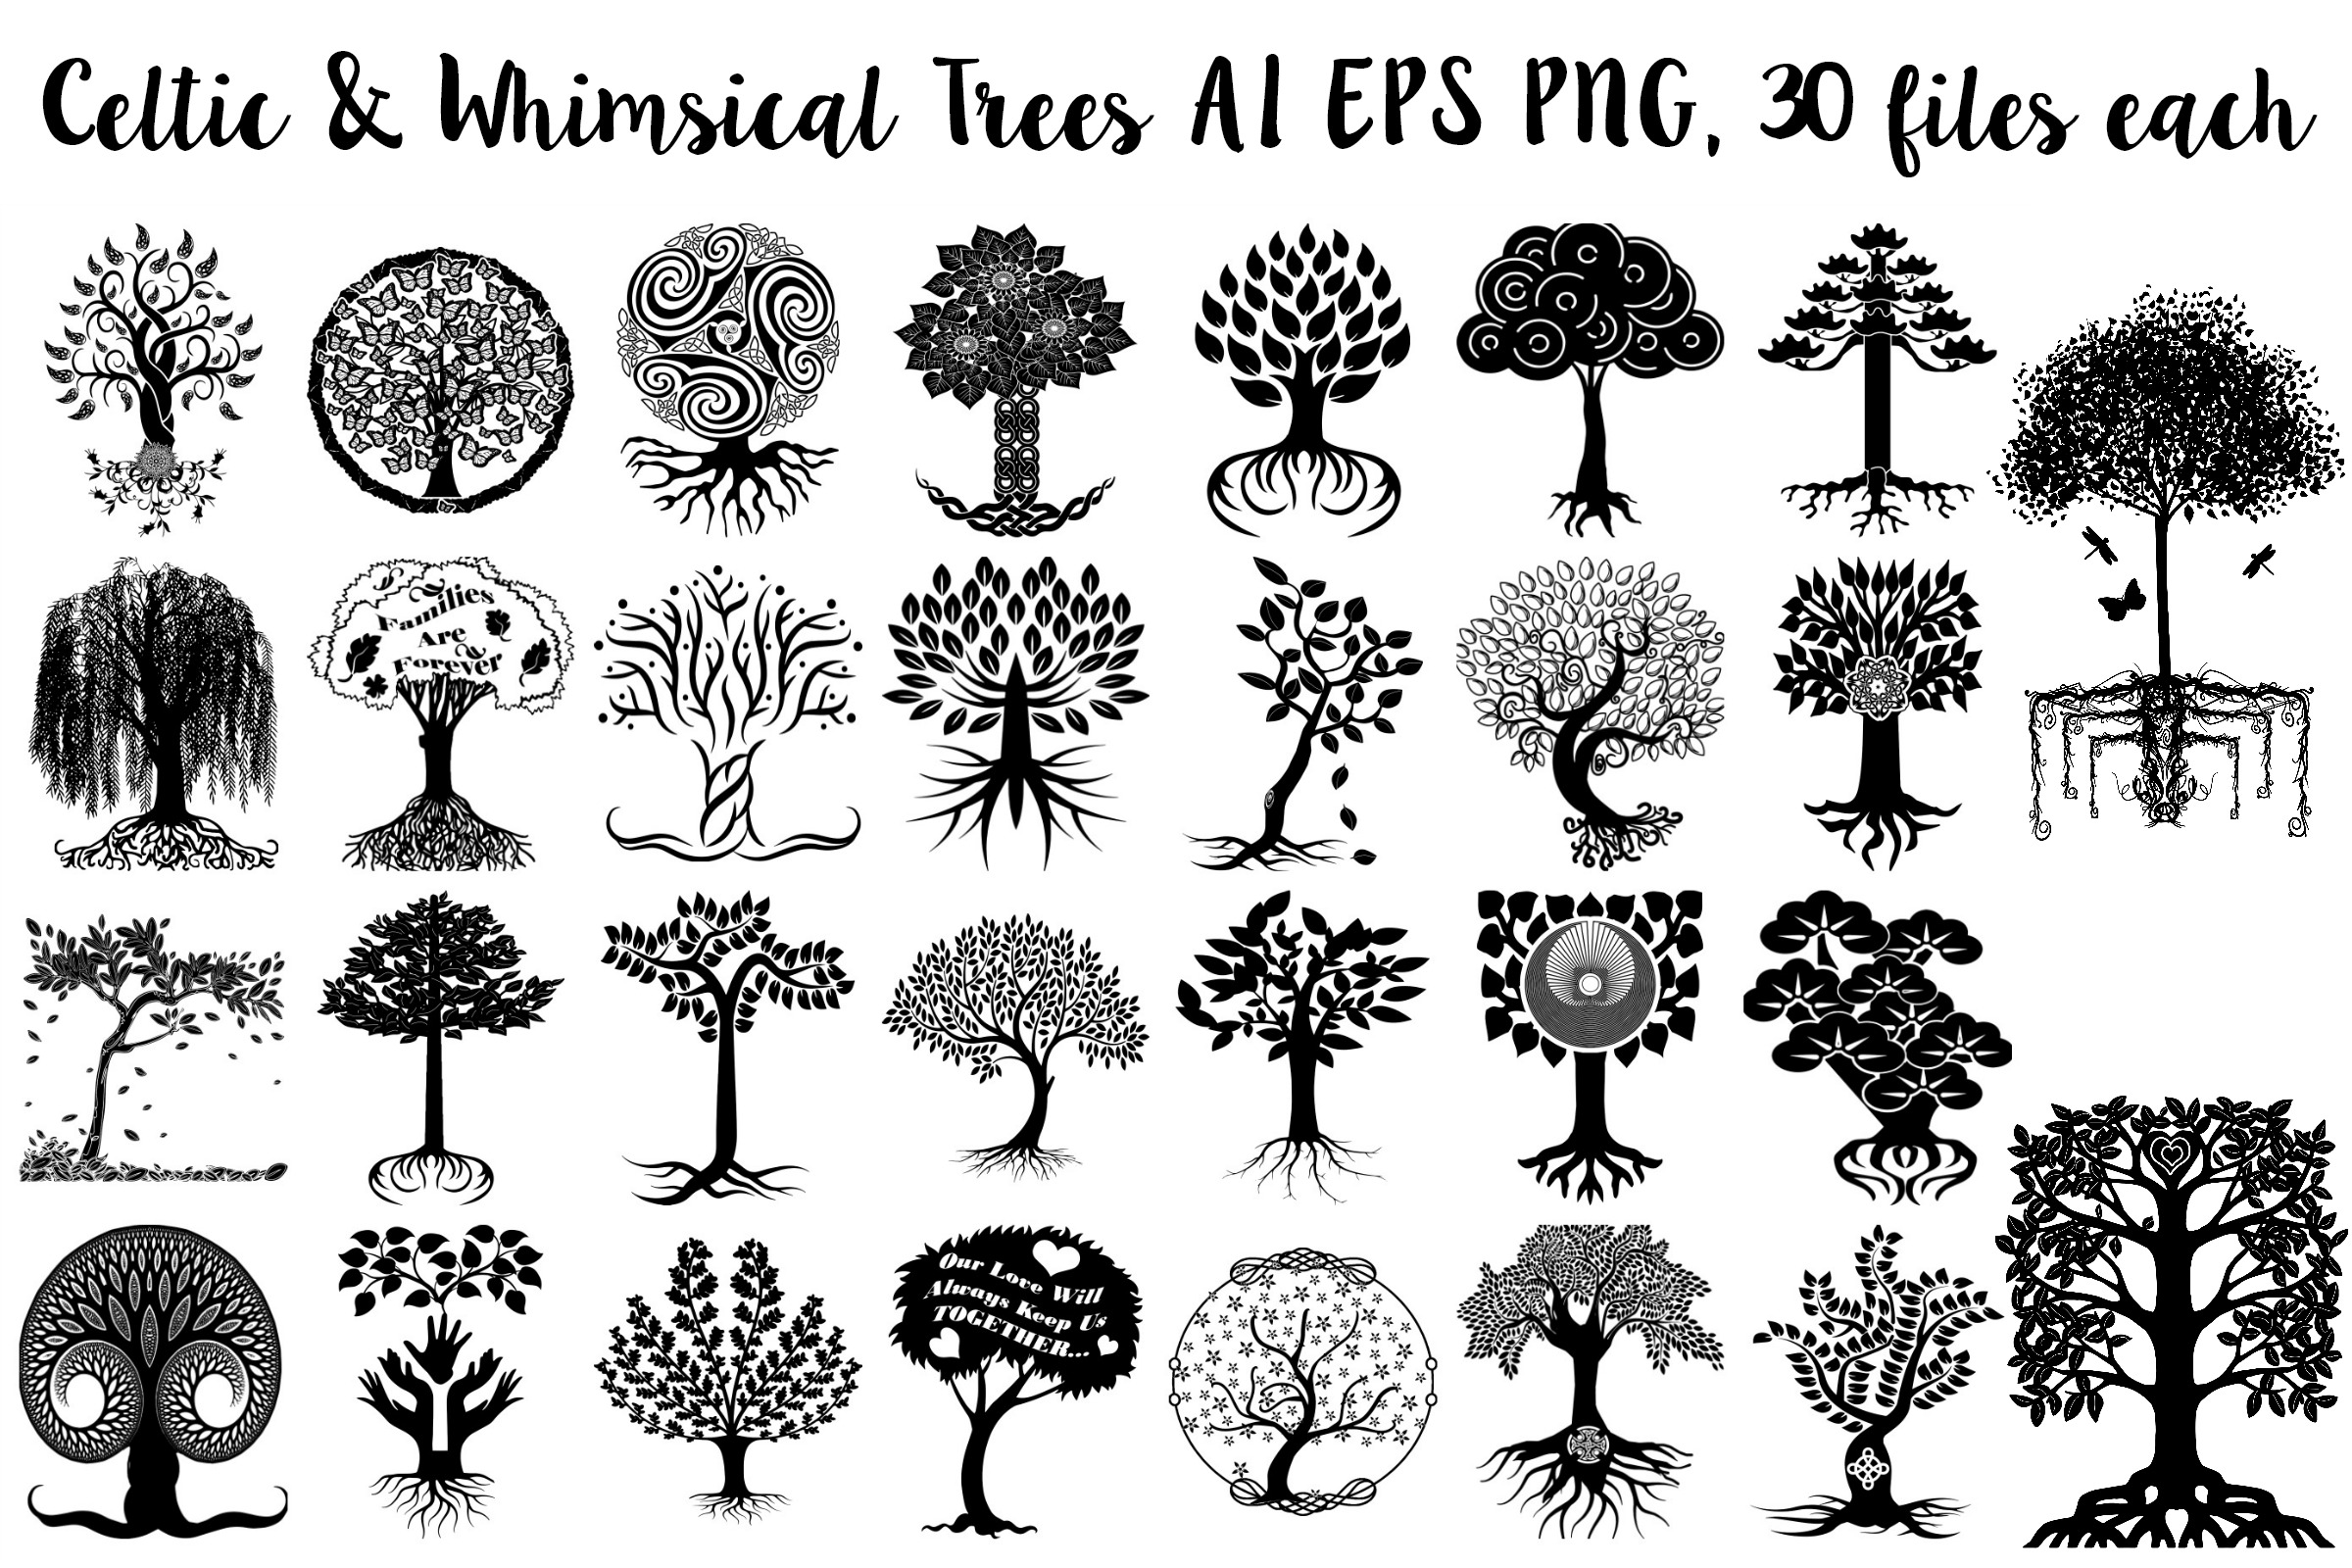 Celtic & Whimsical Trees w/Roots AI EPS Vector & PNG example image 1